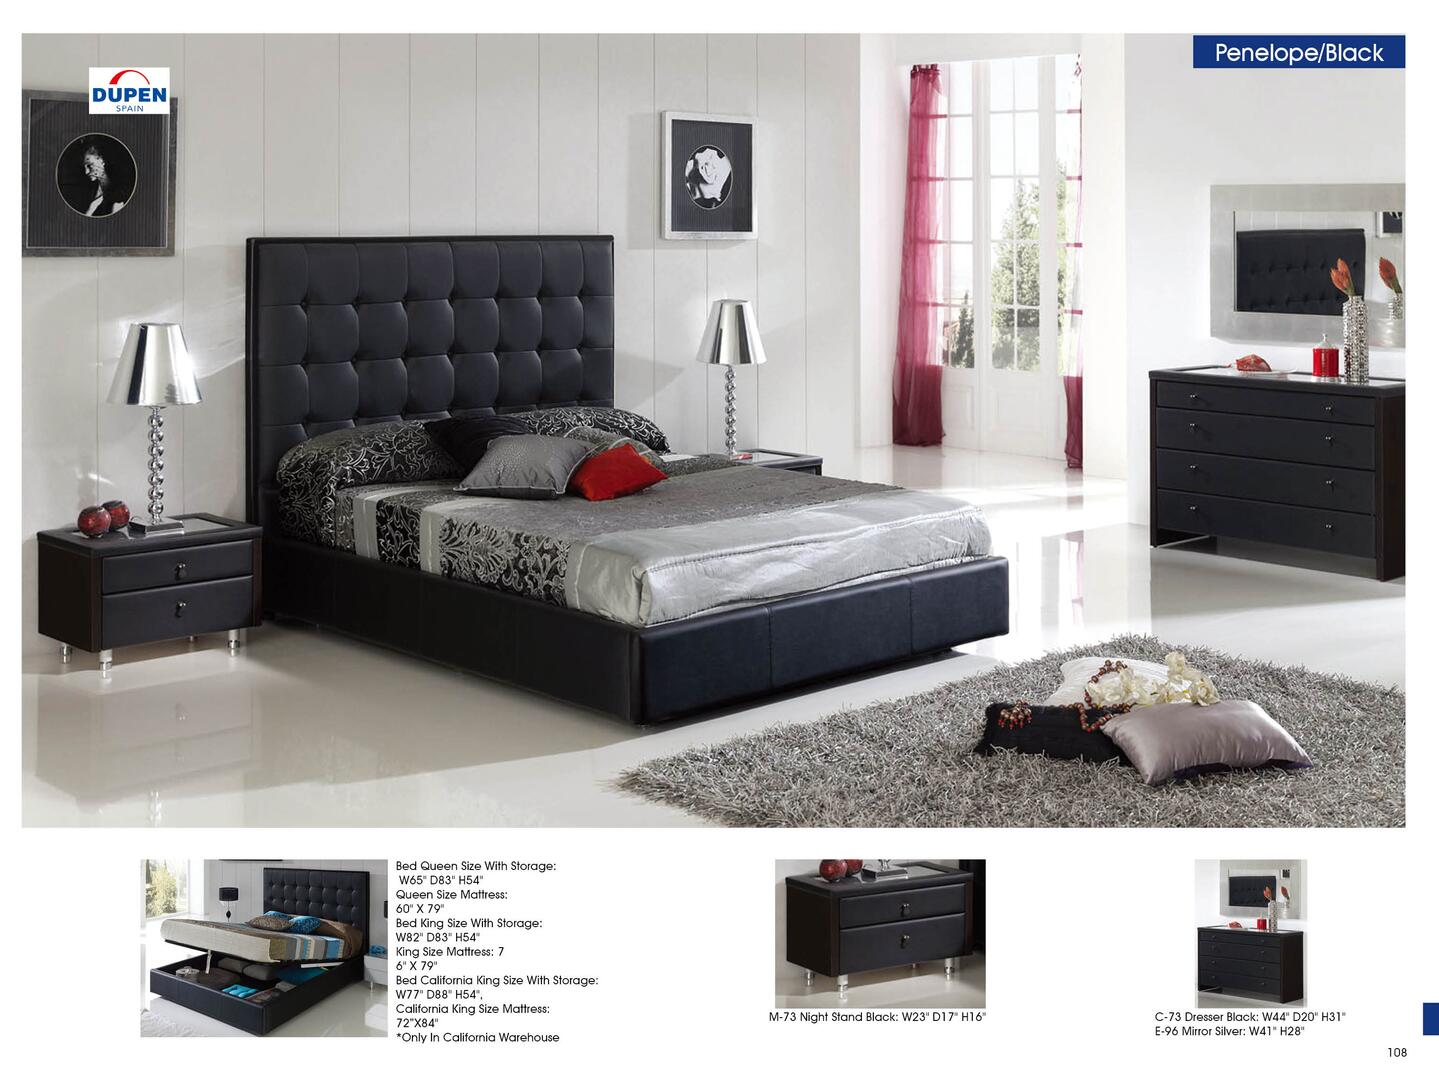 esf i2711 penelope series king size bed appliances 16329 | 22443acd8762624257227dedb2147e48 1244674